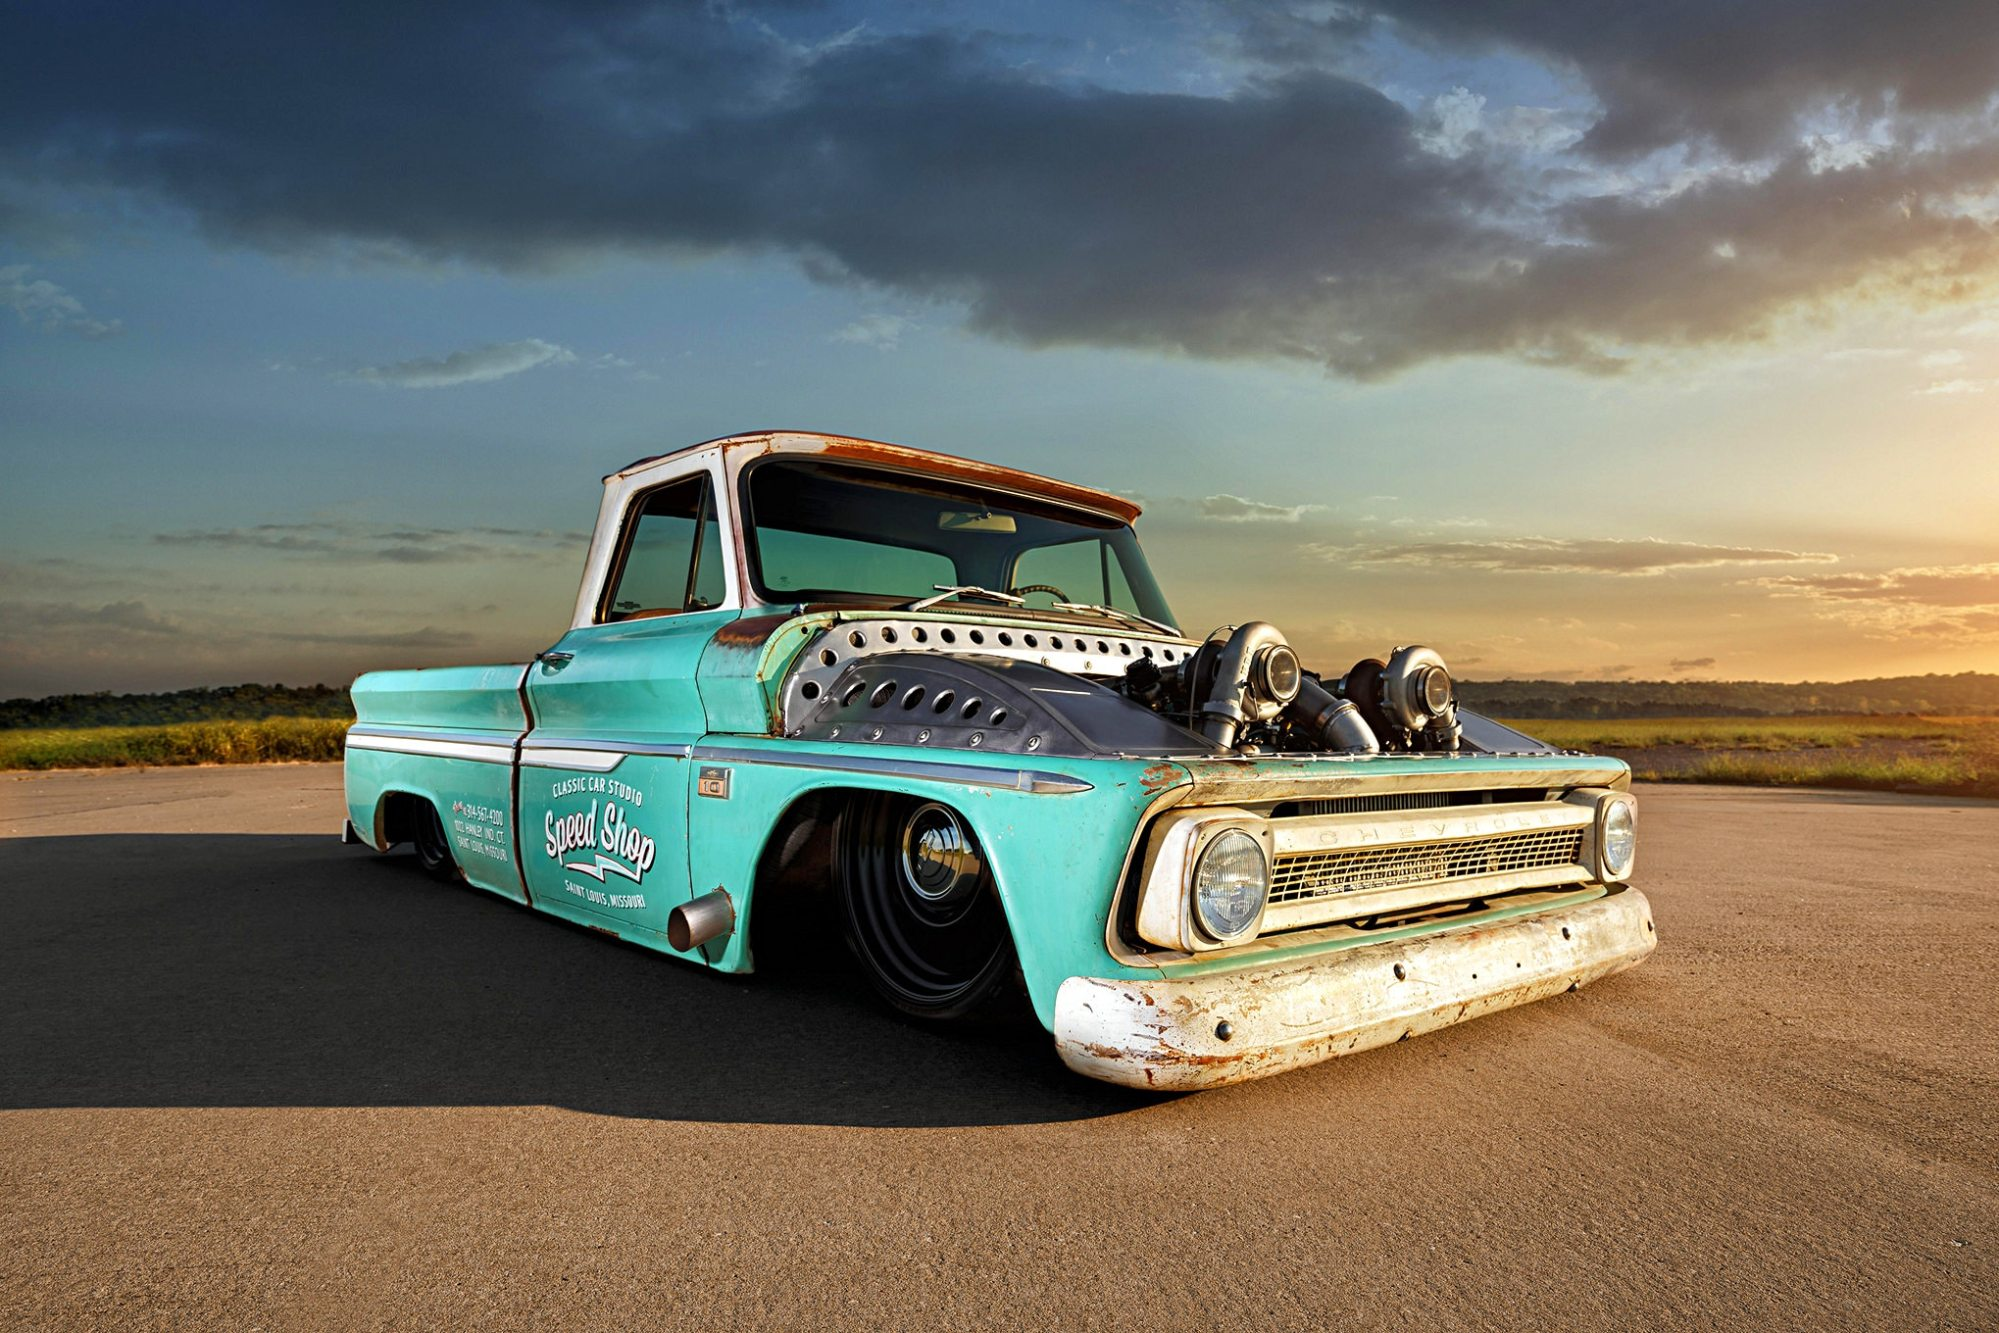 hight resolution of this twin turbo d 1966 chevrolet c10 will make you do a double take